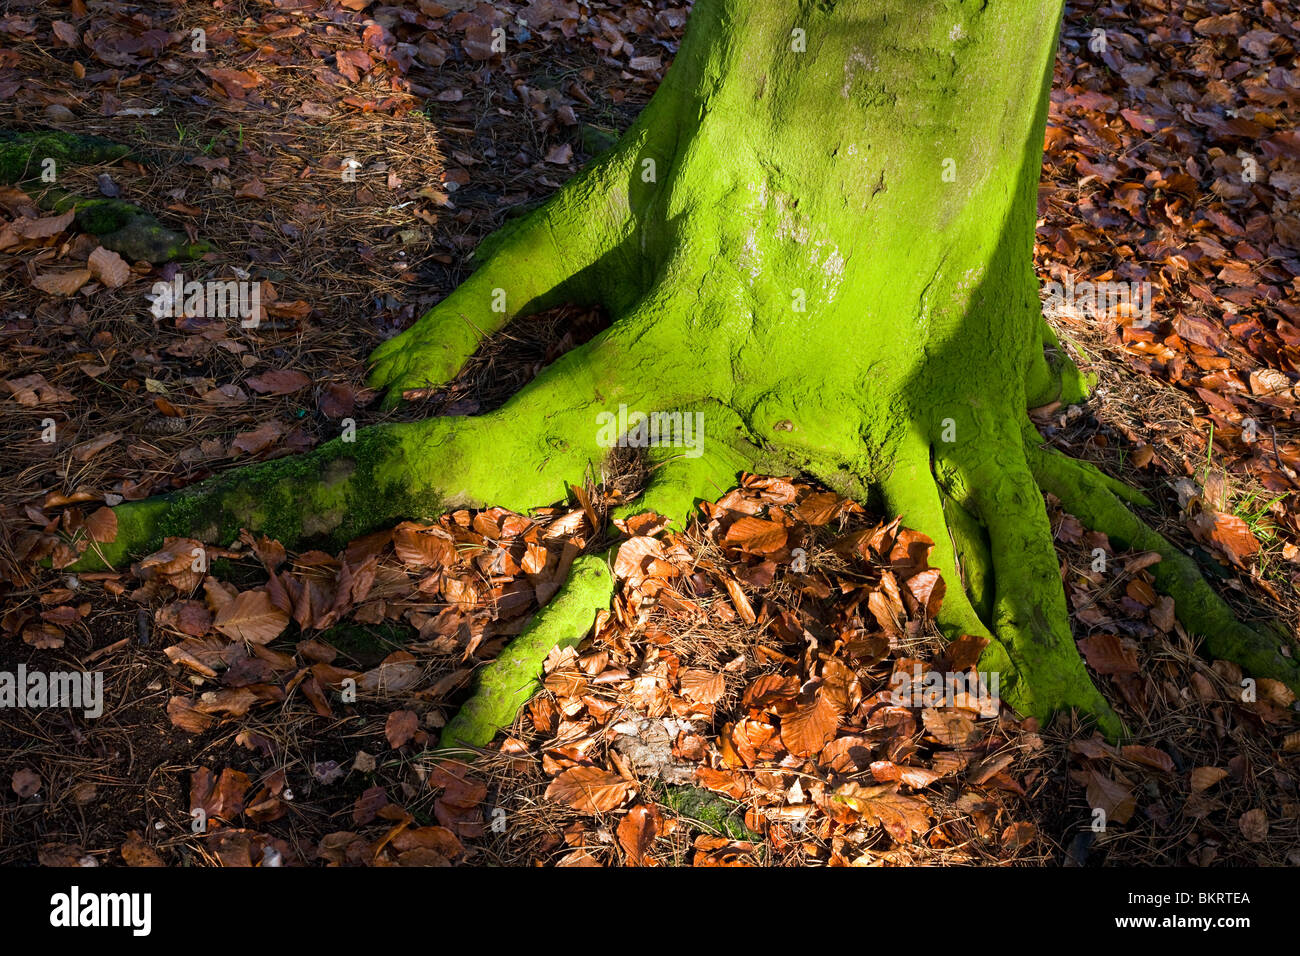 Tree and roots covered in green algae (Chlorophyte) in autumn on Cannock Chase an Area of Outstanding Natural Beauty - Stock Image